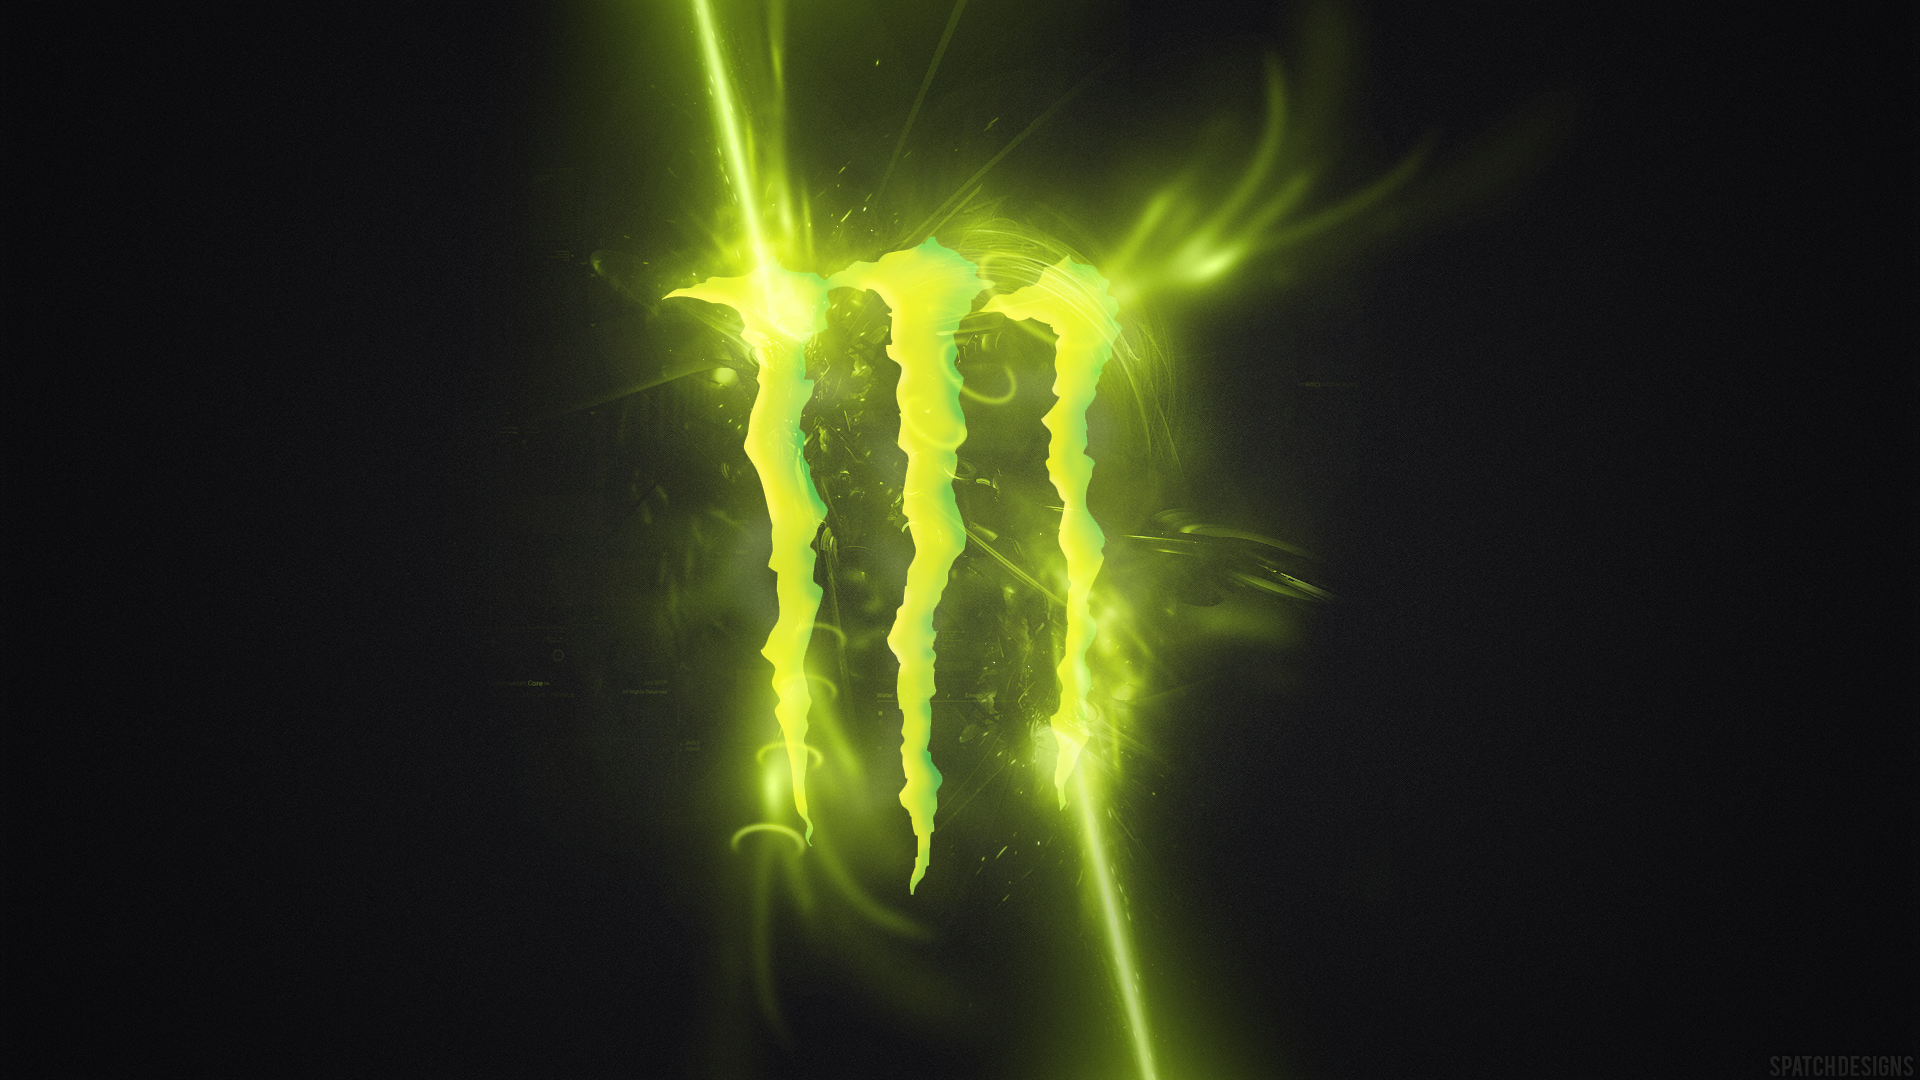 Monster Energy Wallpaper For Iphone Images amp Pictures   Becuo 1920x1080